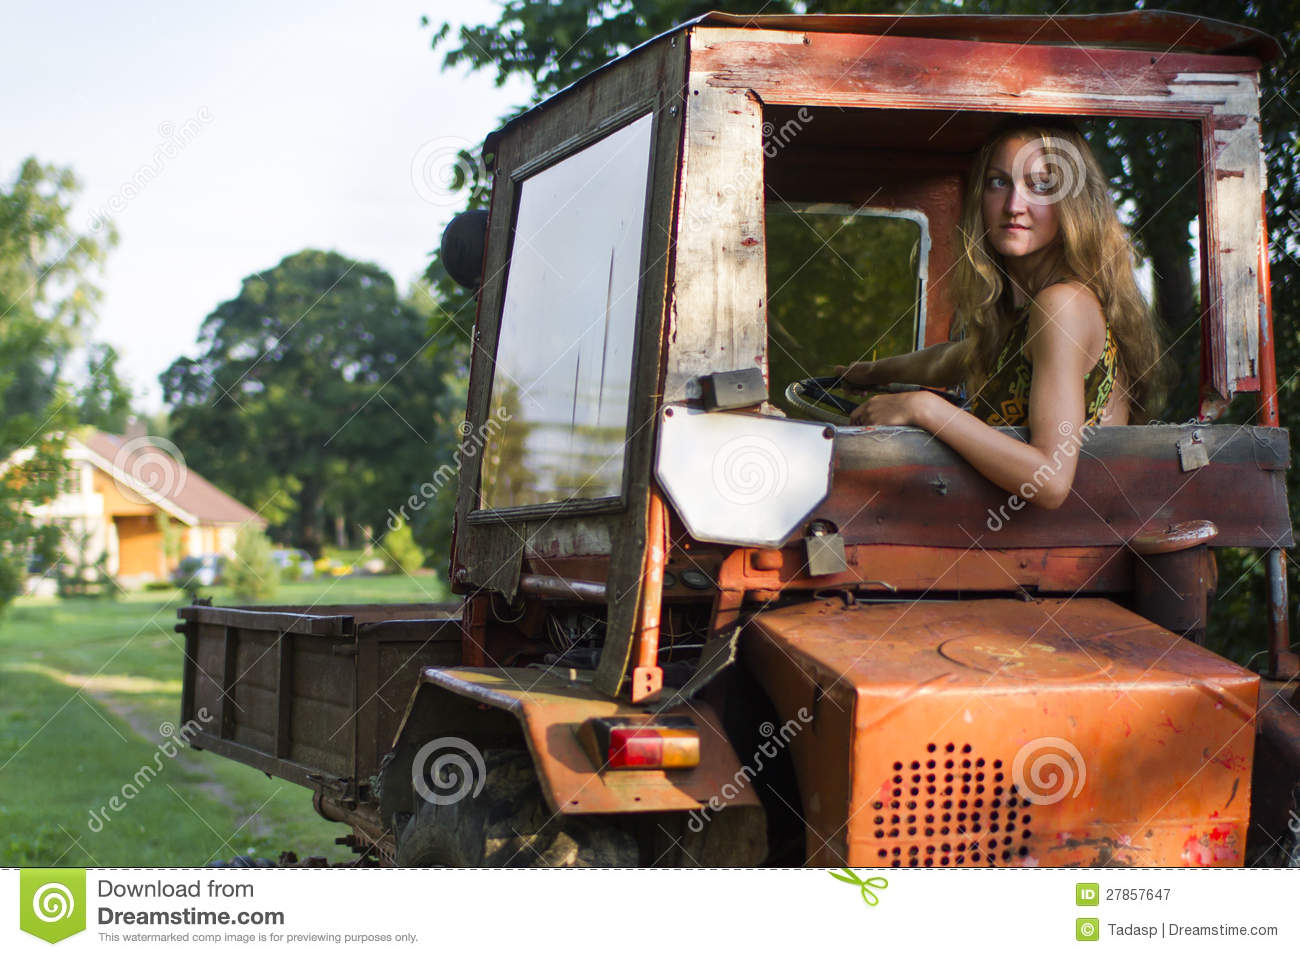 nude chicks in tractors